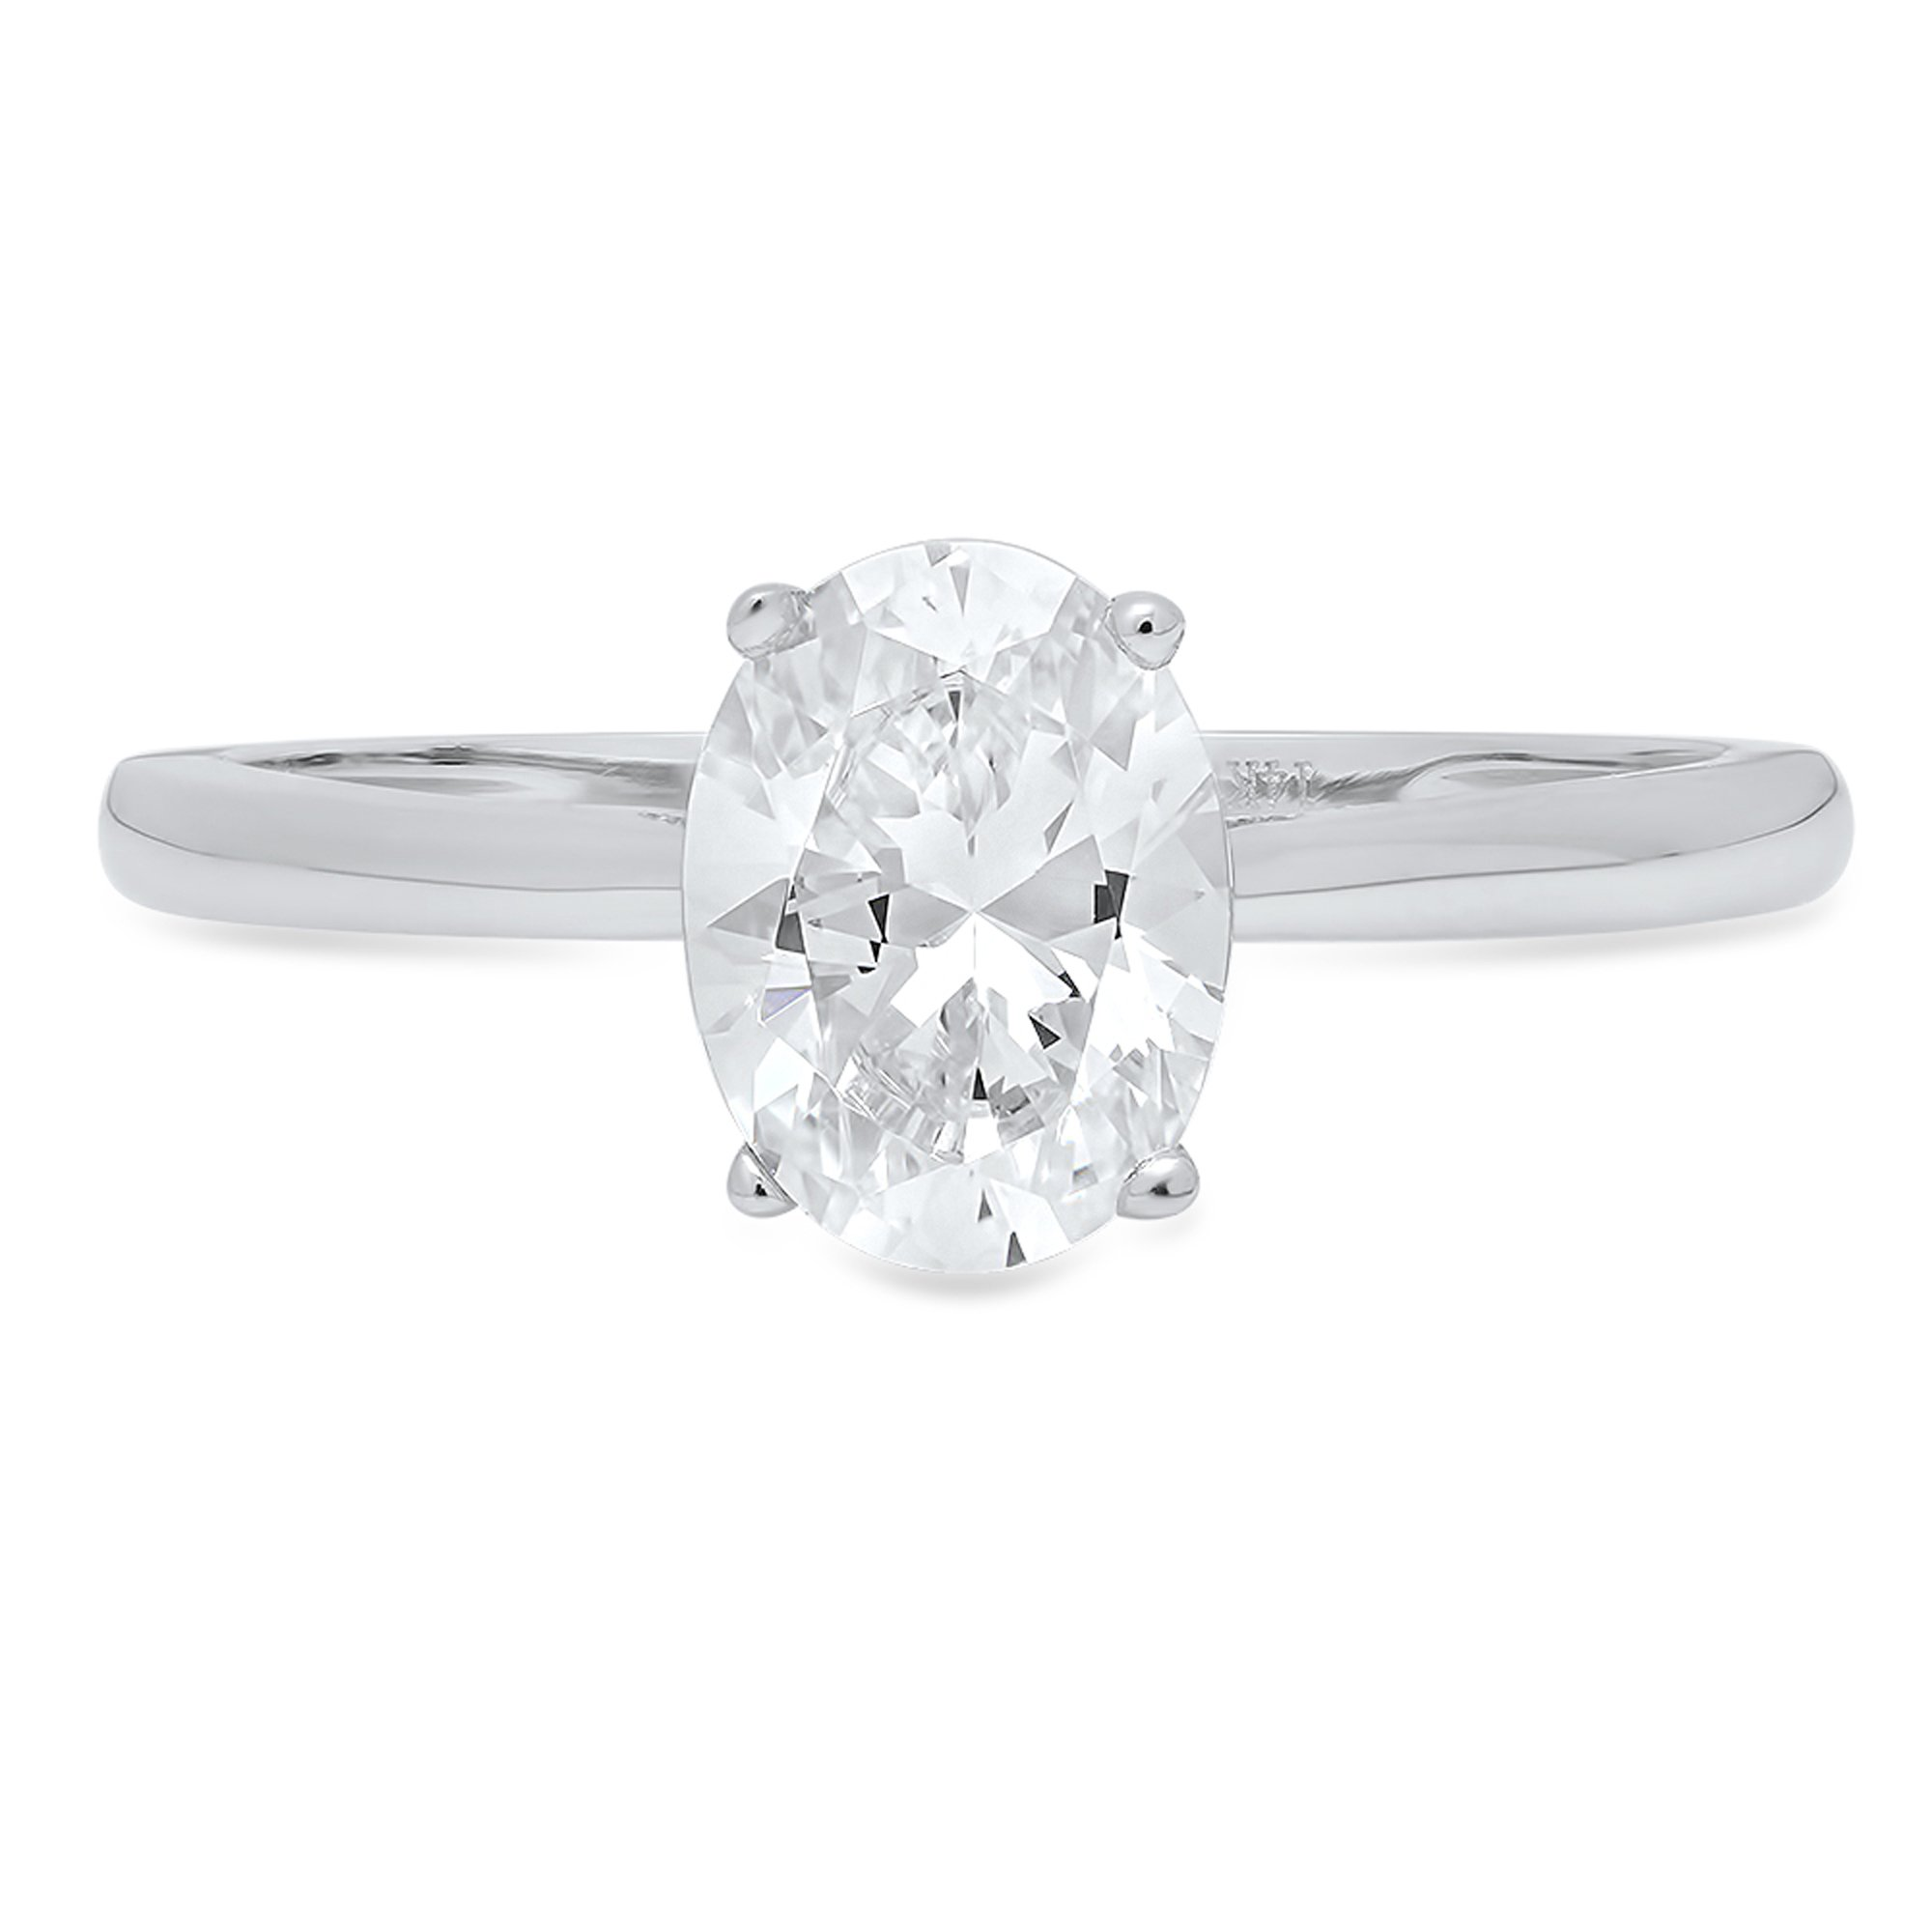 1.20 ct Brilliant Oval Cut Solitaire Engagement Wedding Promise Bridal Ring in Solid 14k White Gold, Size 3.5 Clara Pucci